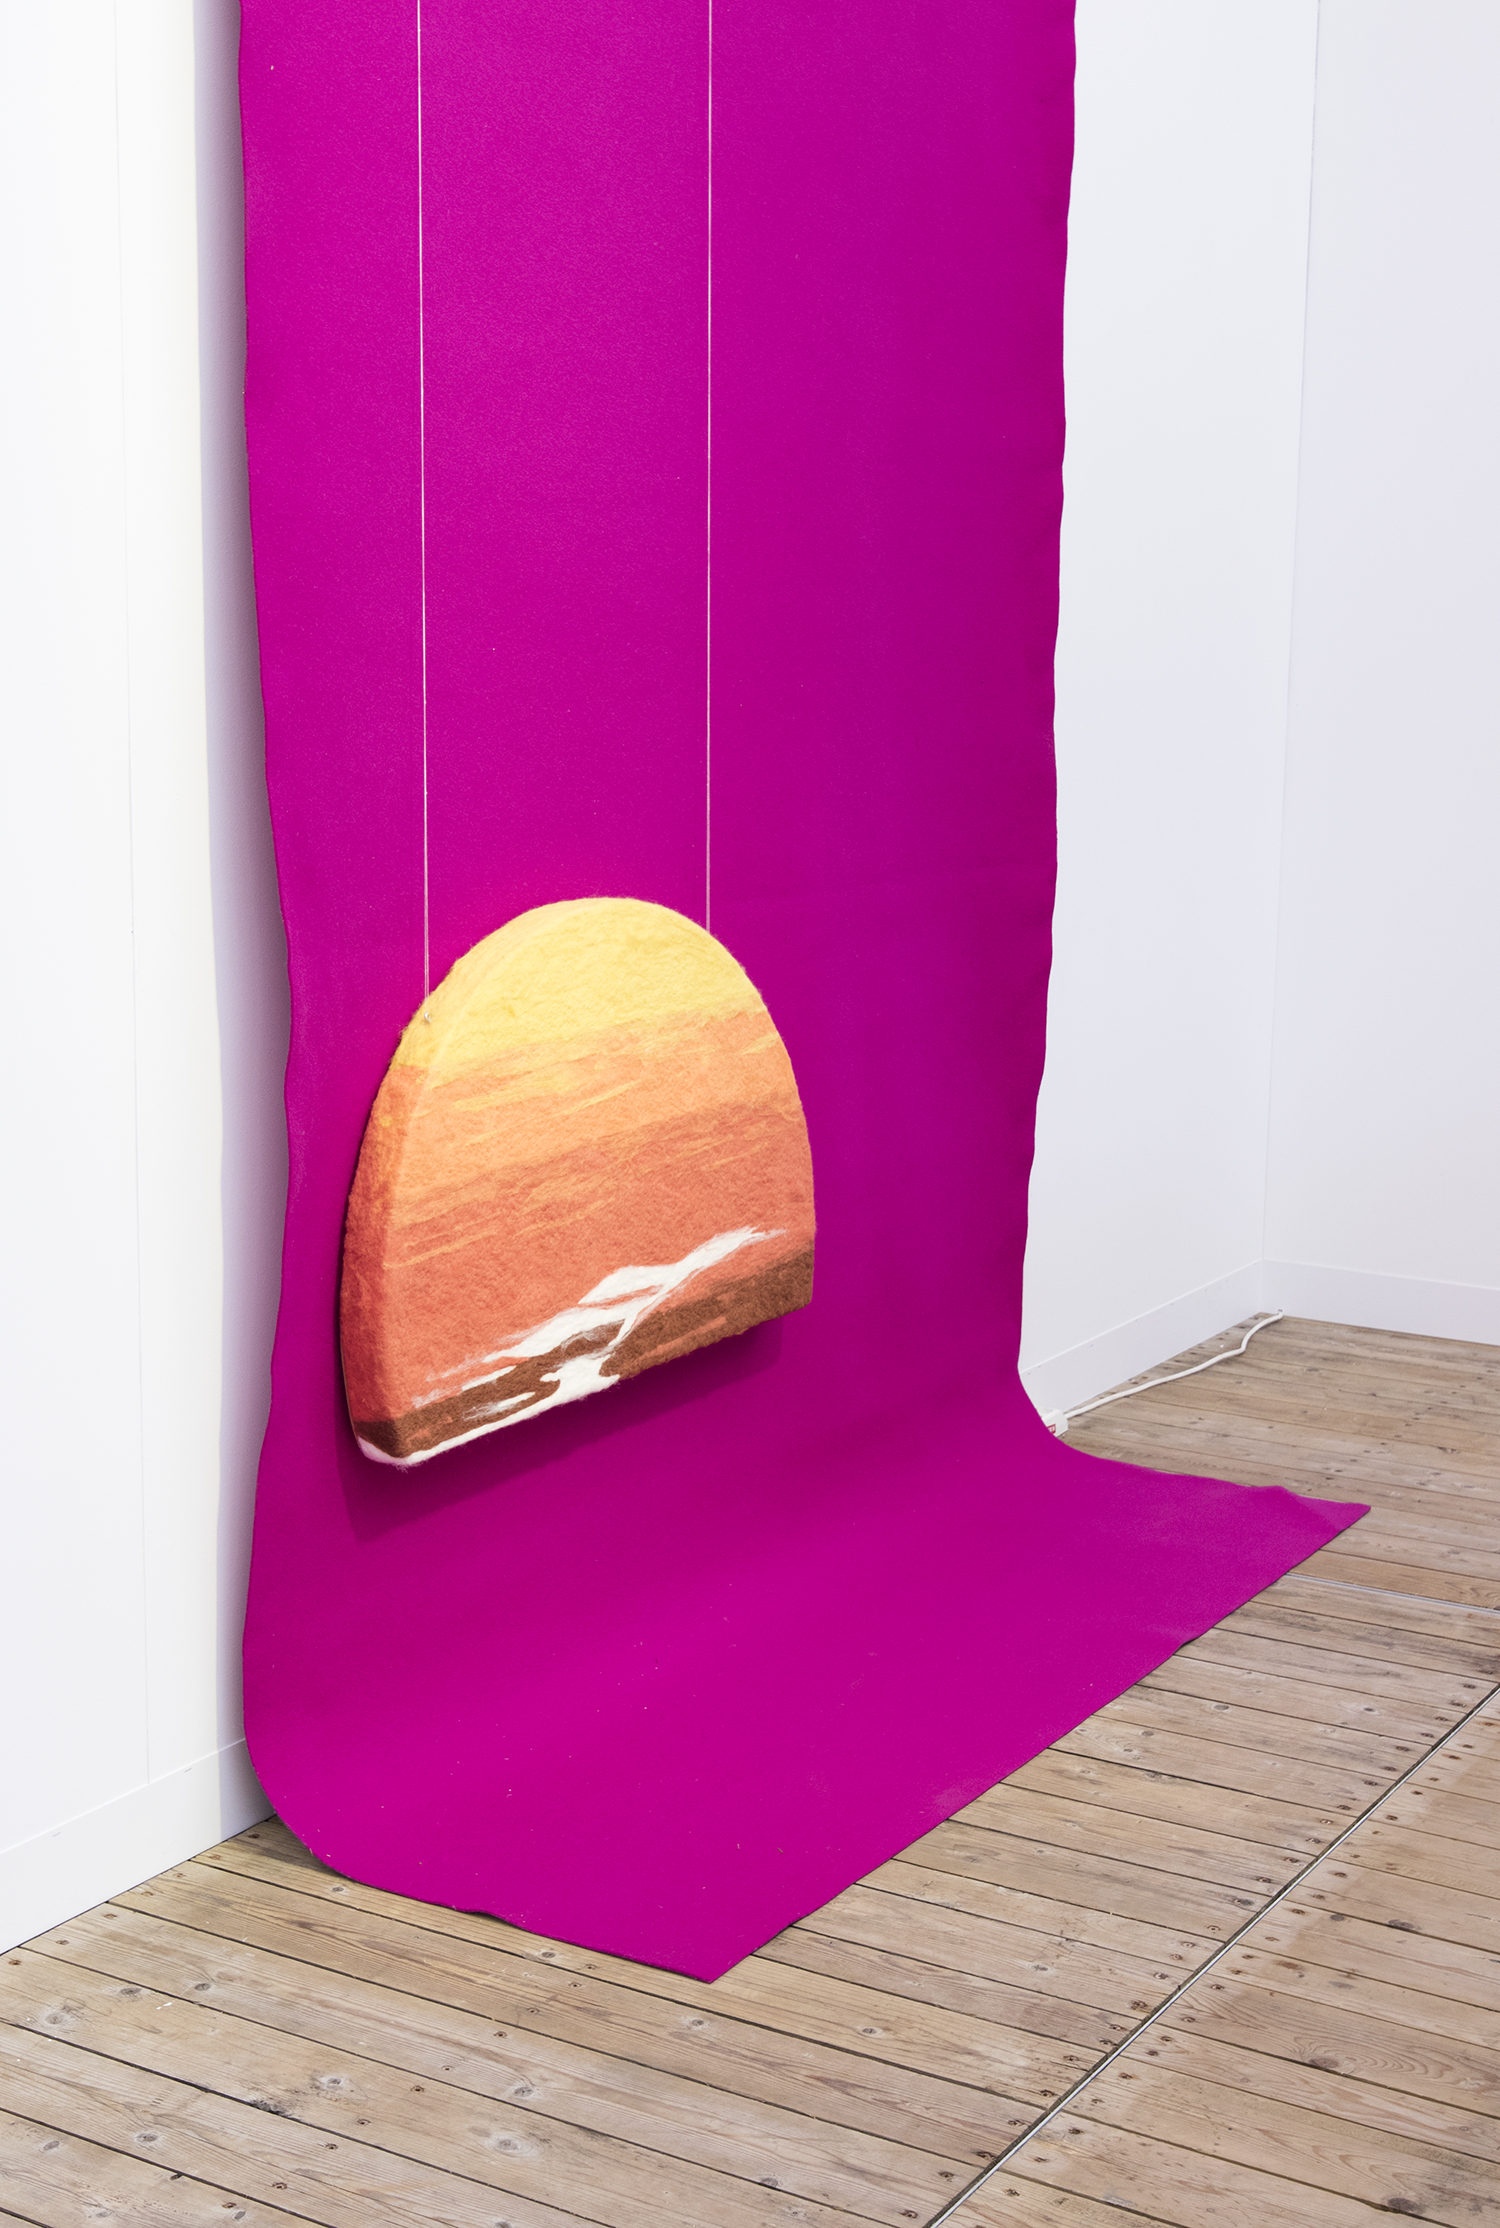 Hans Alf Gallery: Andreas Schulenburg. Foto © I DO ART Agency.